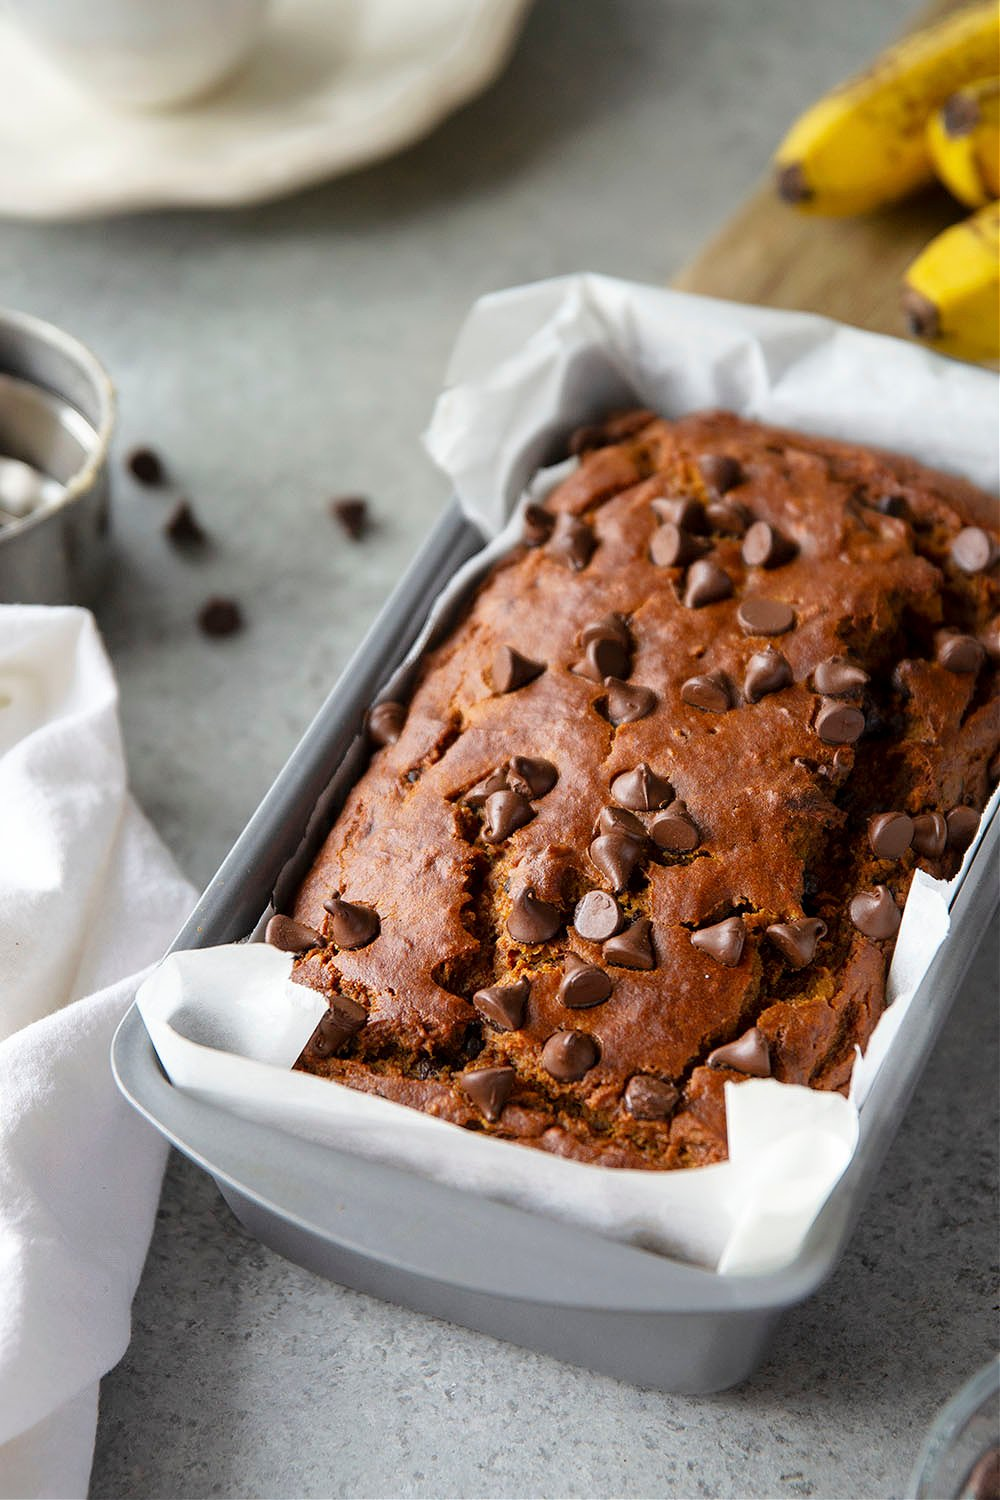 Pumpkin bread and banana bread collide with plenty of chocolate in this banana chocolate chip pumpkin bread that's sure to become a fall favorite!